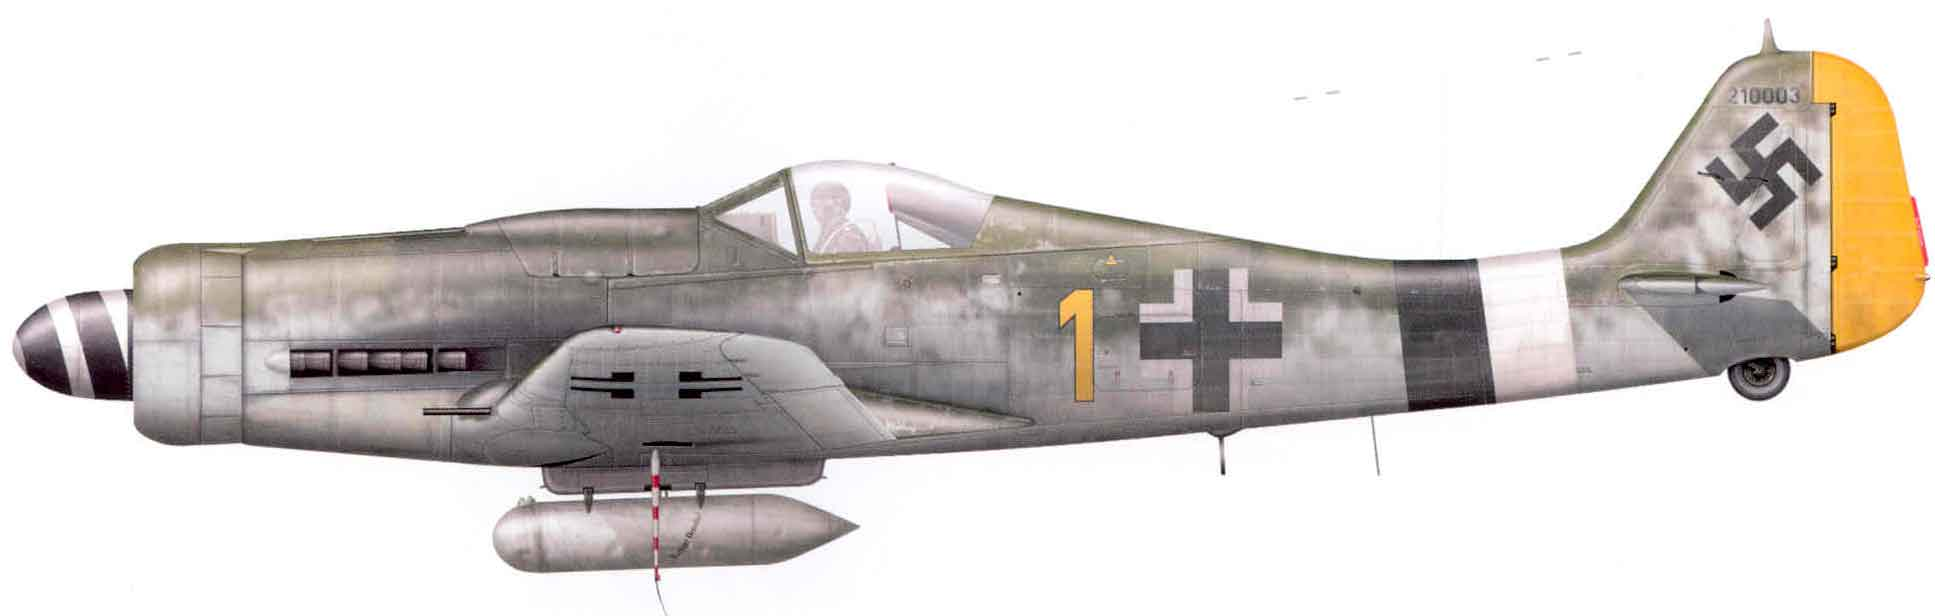 Click image for larger version  Name:fw190_d9_4.jpg Views:40 Size:35.9 KB ID:2004582